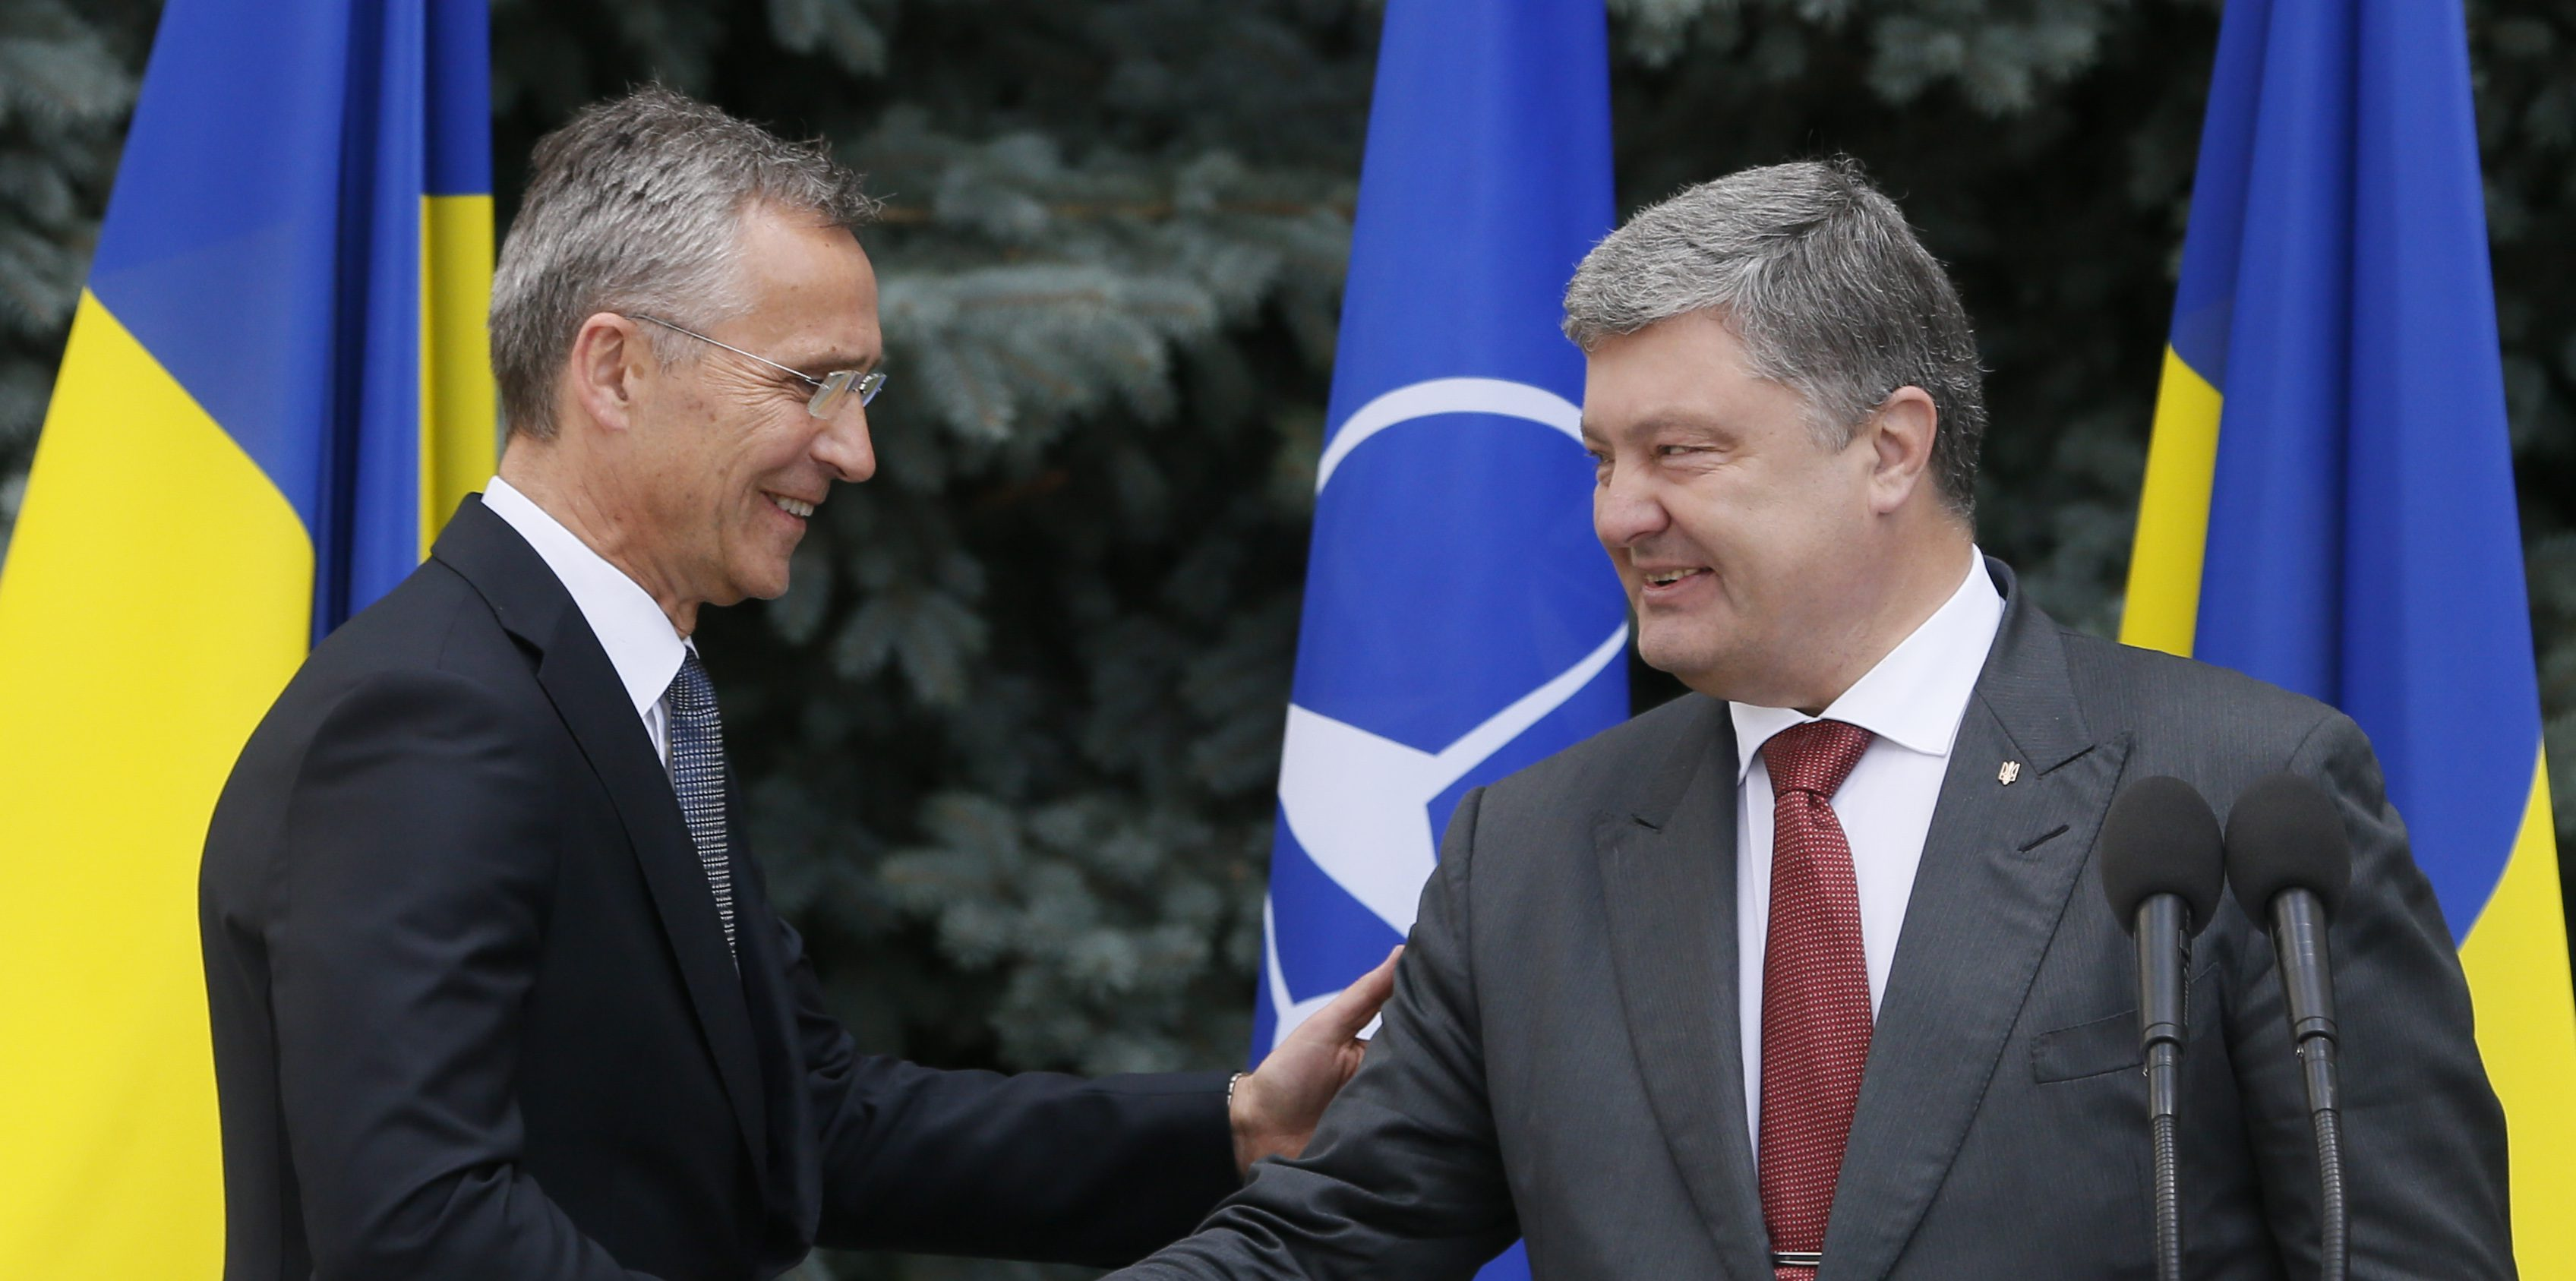 Will Ukraine join NATO? A course for disappointment